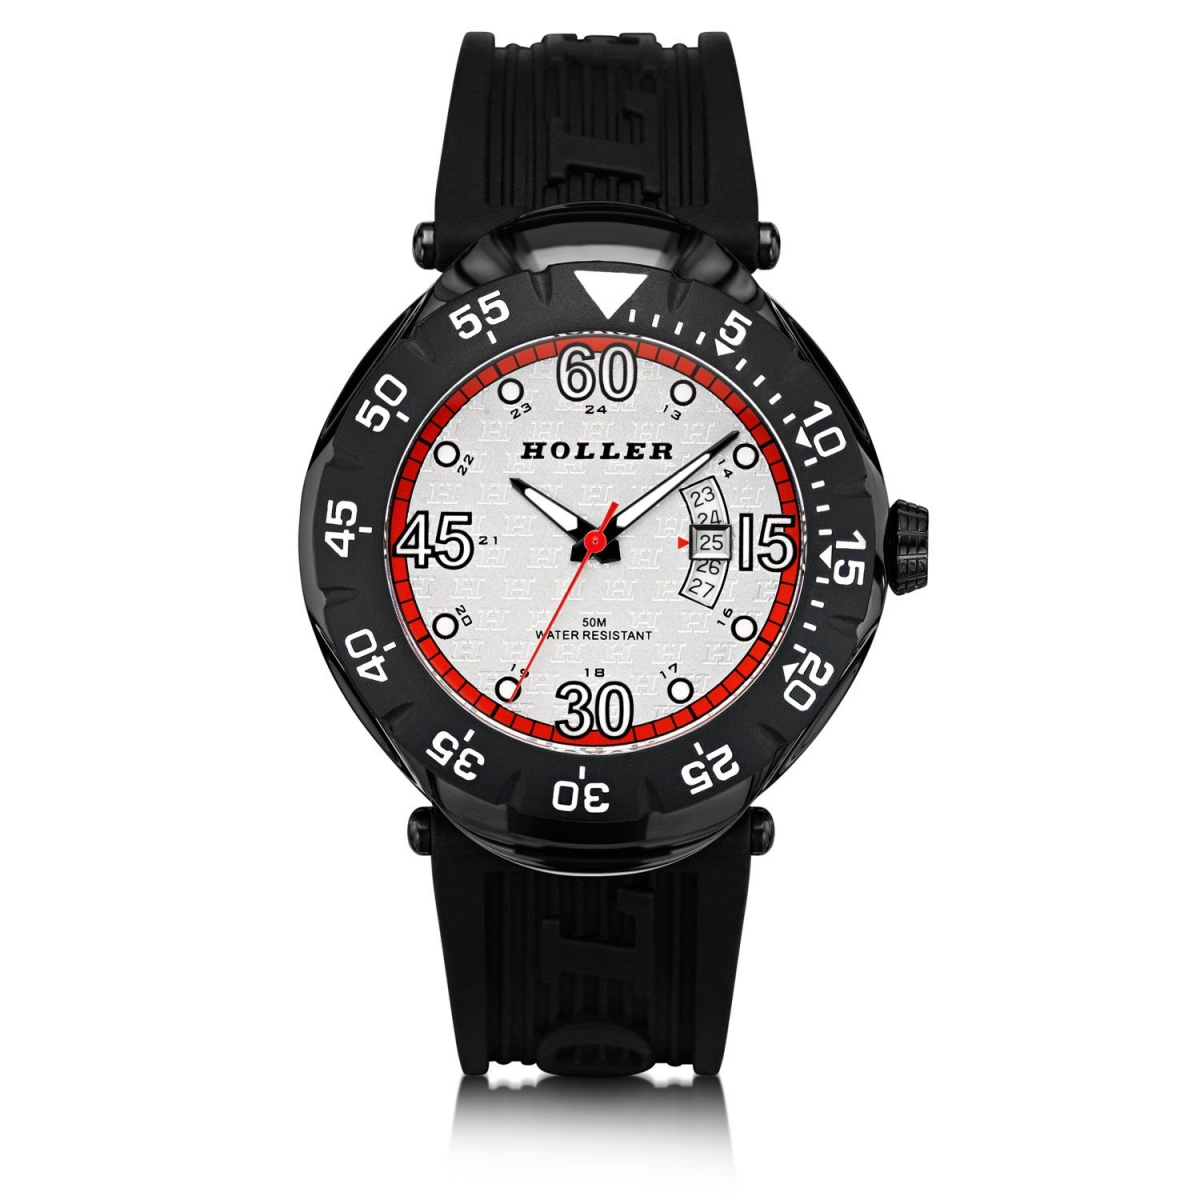 Goldwax Sport Black & Red Watch